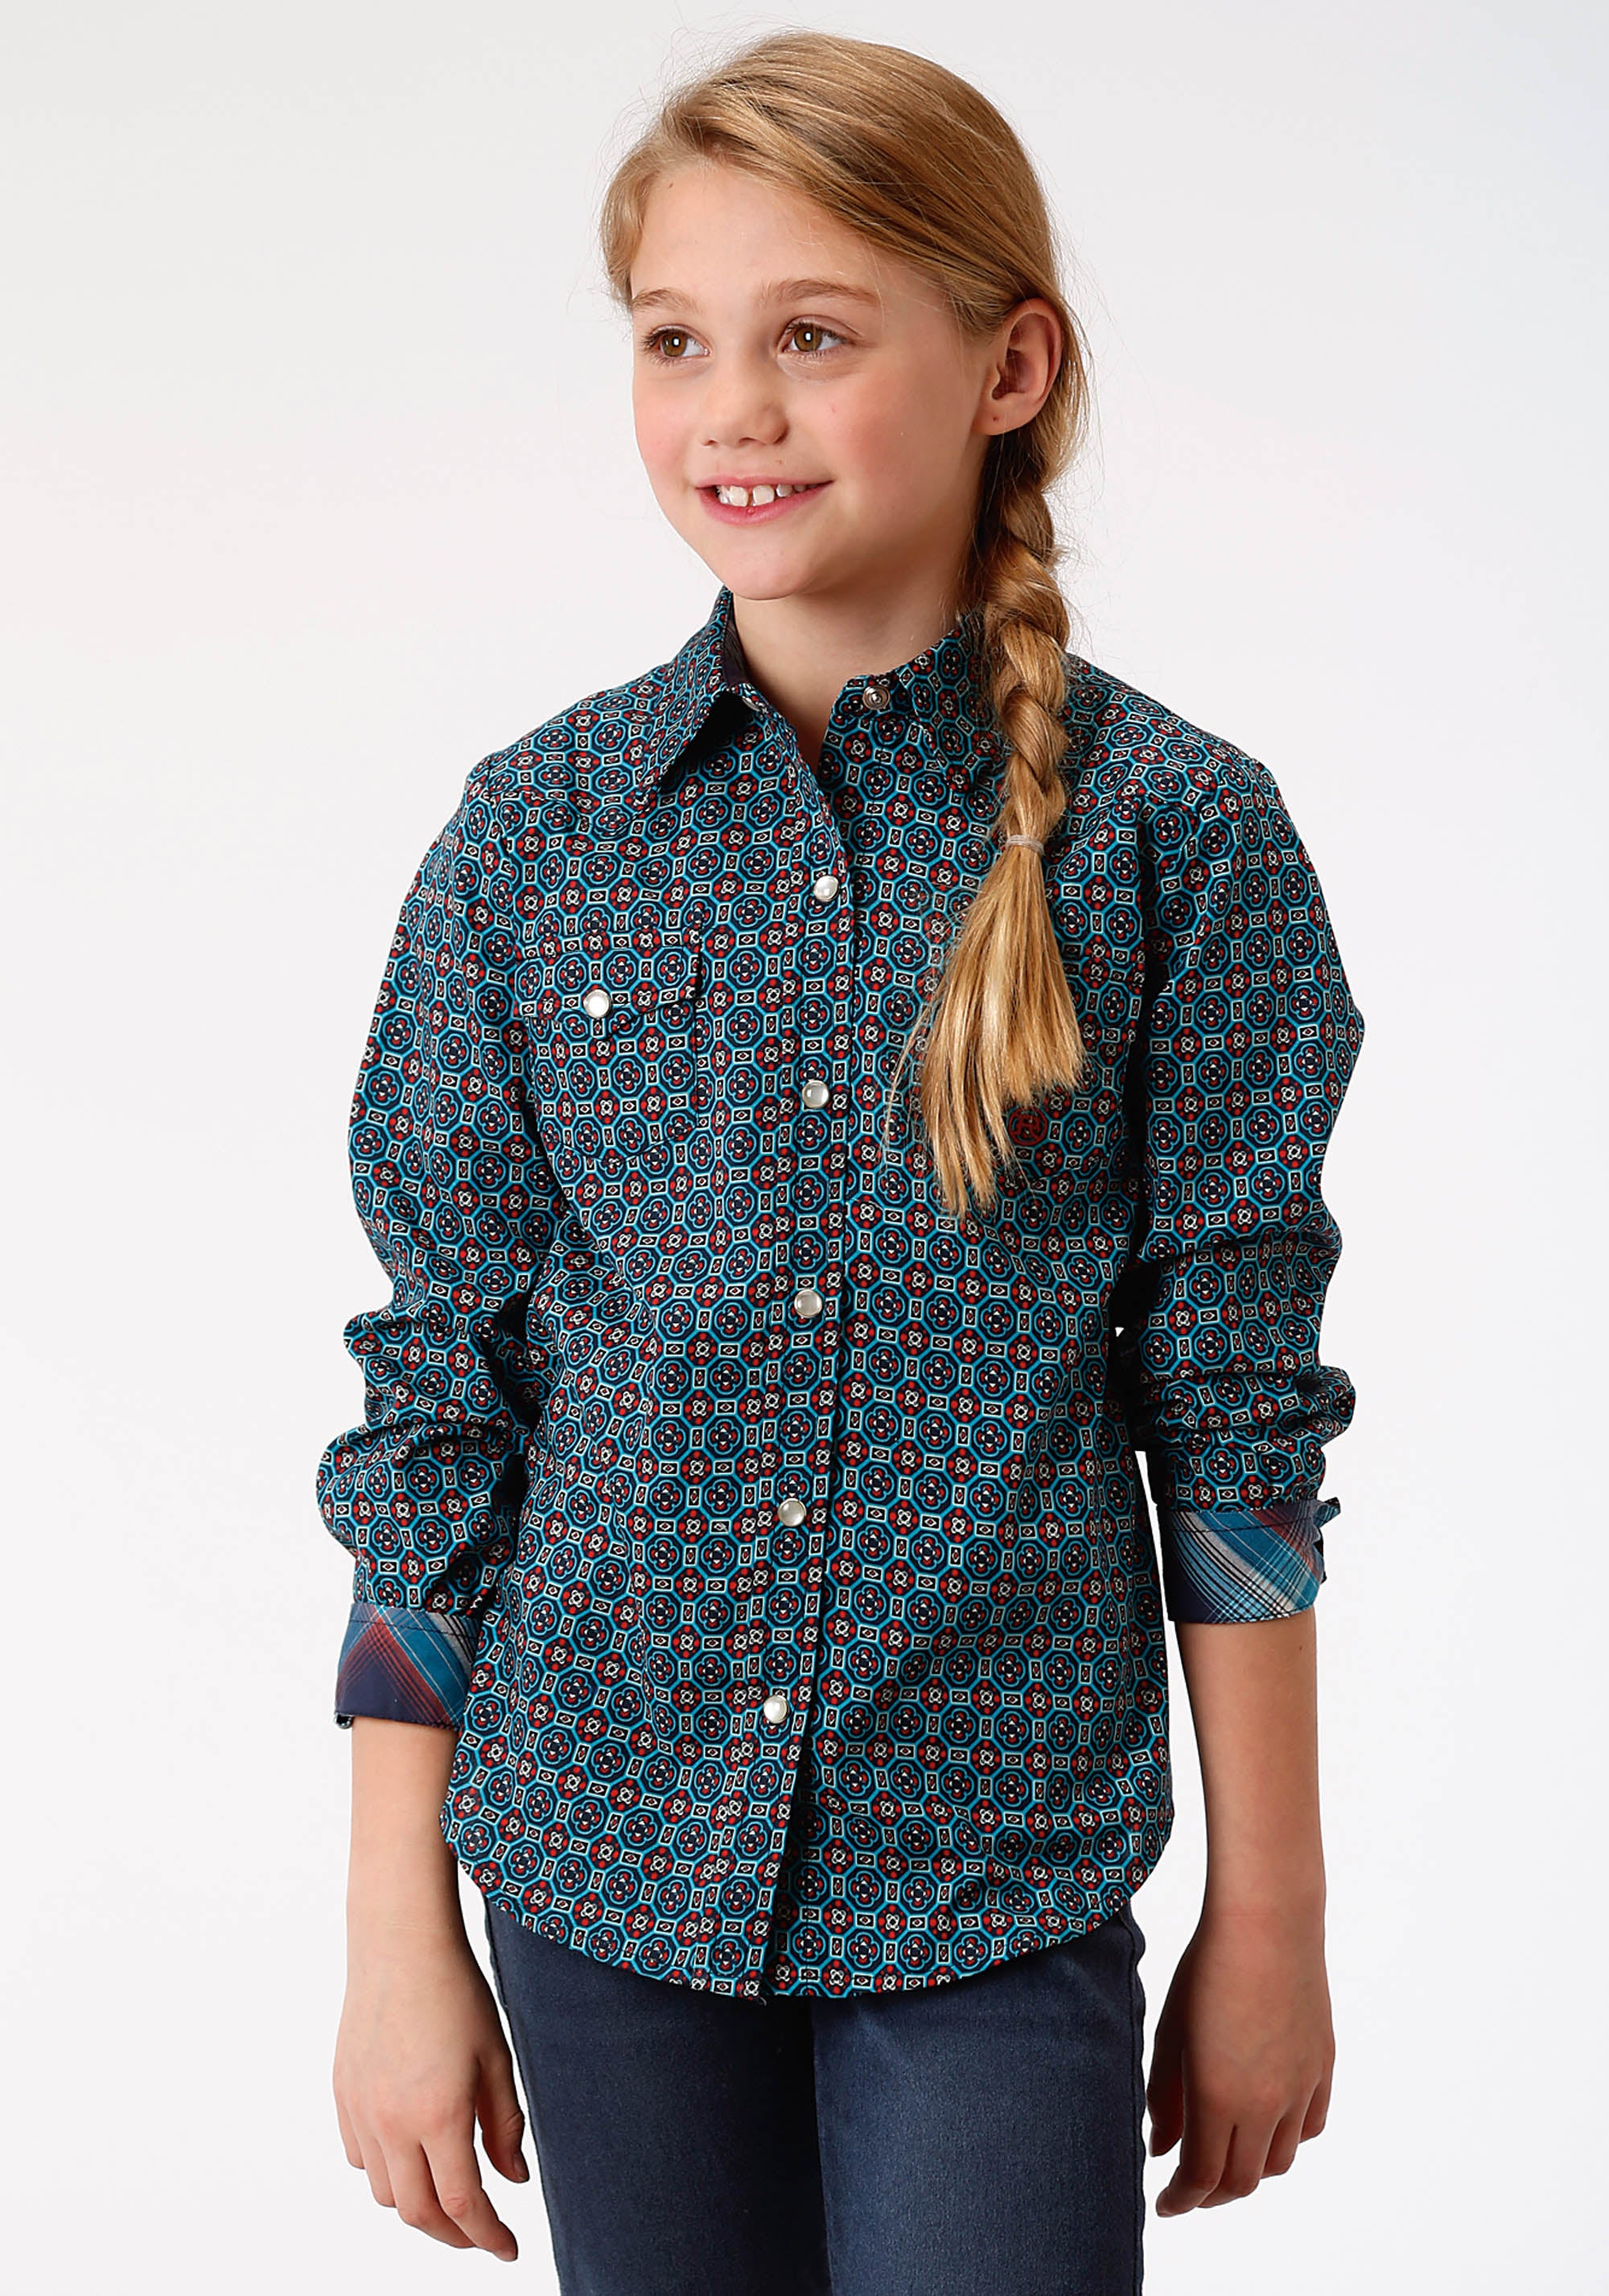 ROPER GIRLS BLUE 9649 GLASS FOULARD GIRLS AMARILLO COLLECTION- AUTUMN SUNSET LONG SLEEVE